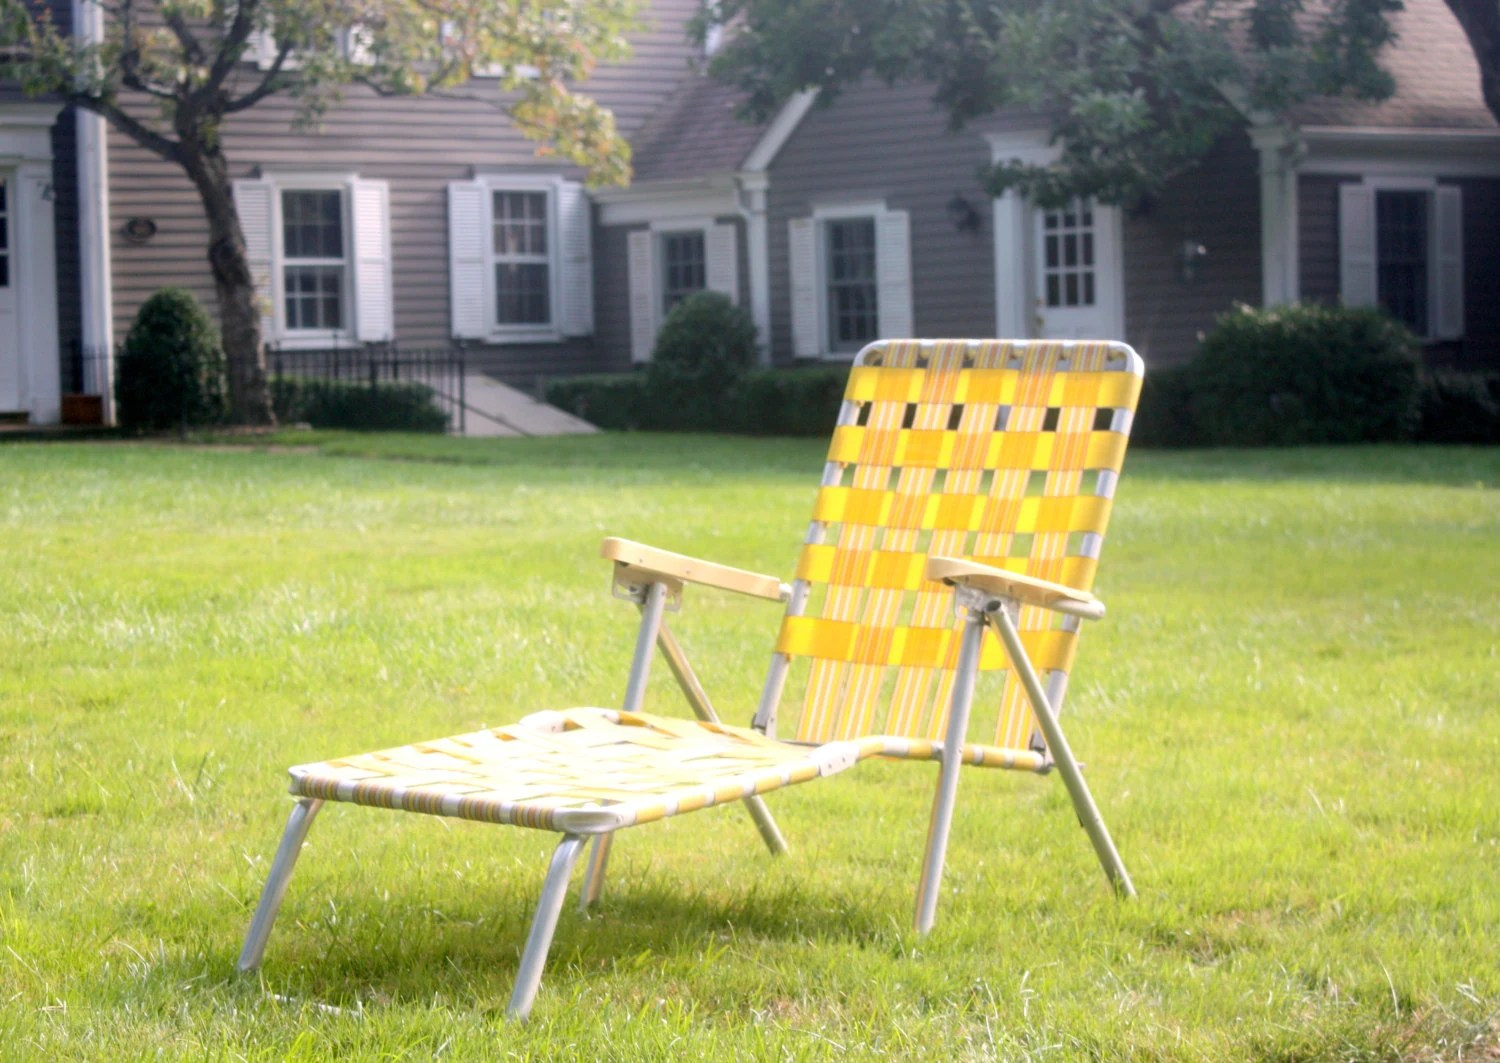 Retro Lawn Chairs Vintage Aluminum Folding Chaise Lounge Chair Retro Yellow